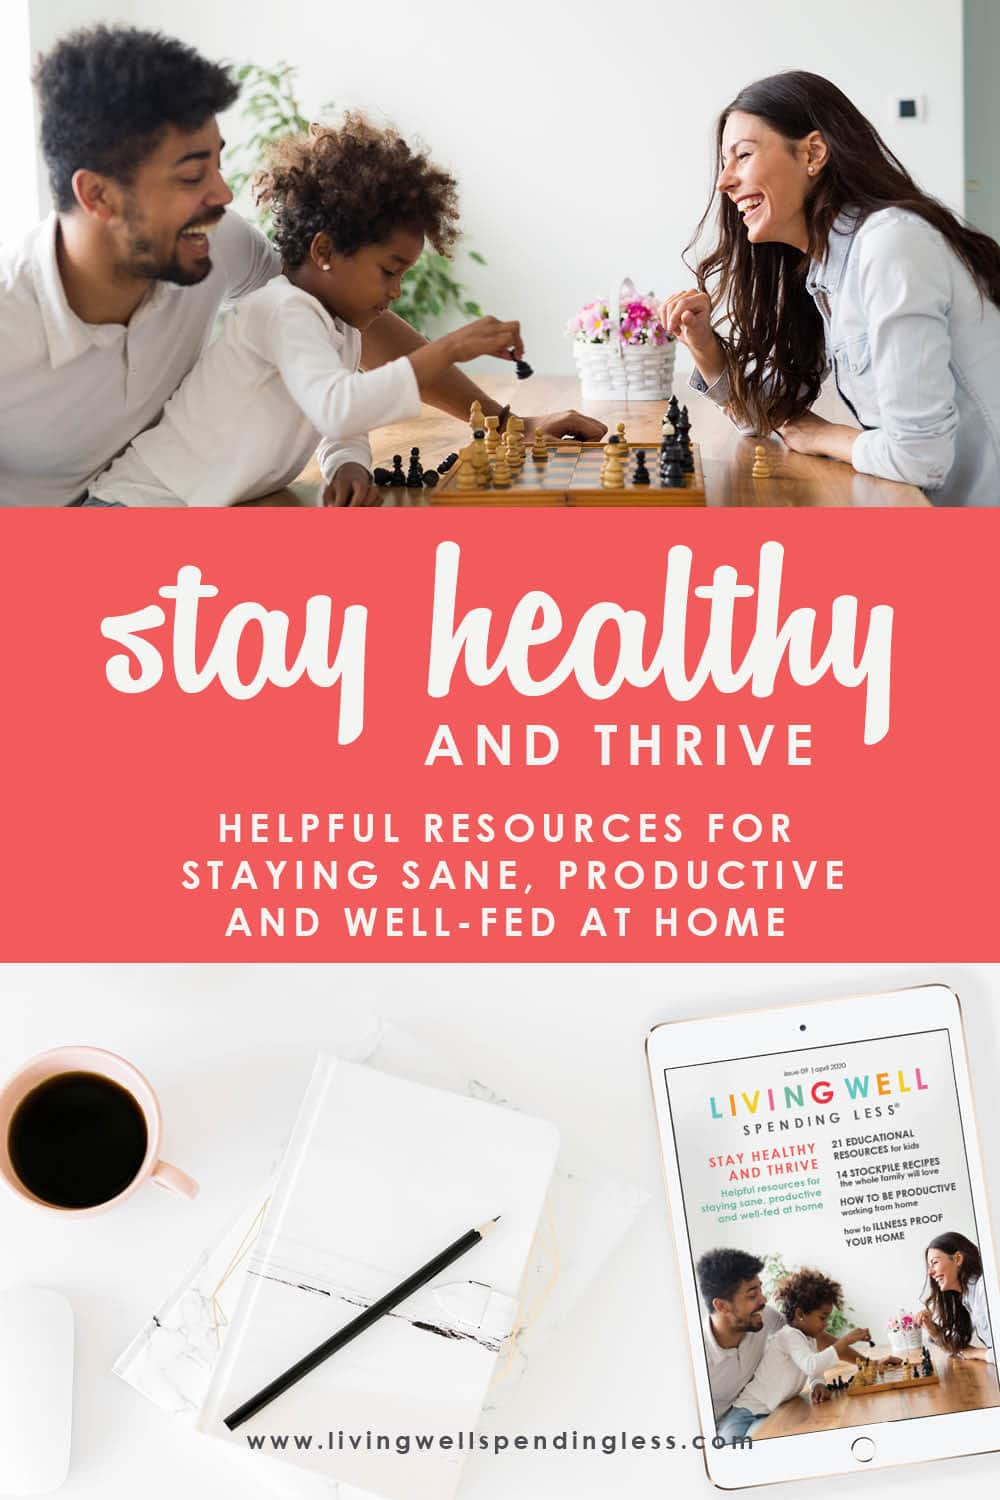 Here at LWSL, we've always focused on providing the tools & resources to help you thrive at home, tips and ideas and guidance for how to live better, clean easier, and get dinner on the table faster. So let us help you during this time of uncertainty to work towards thriving… not just surviving. #thrive #covid19 #stayhealthy